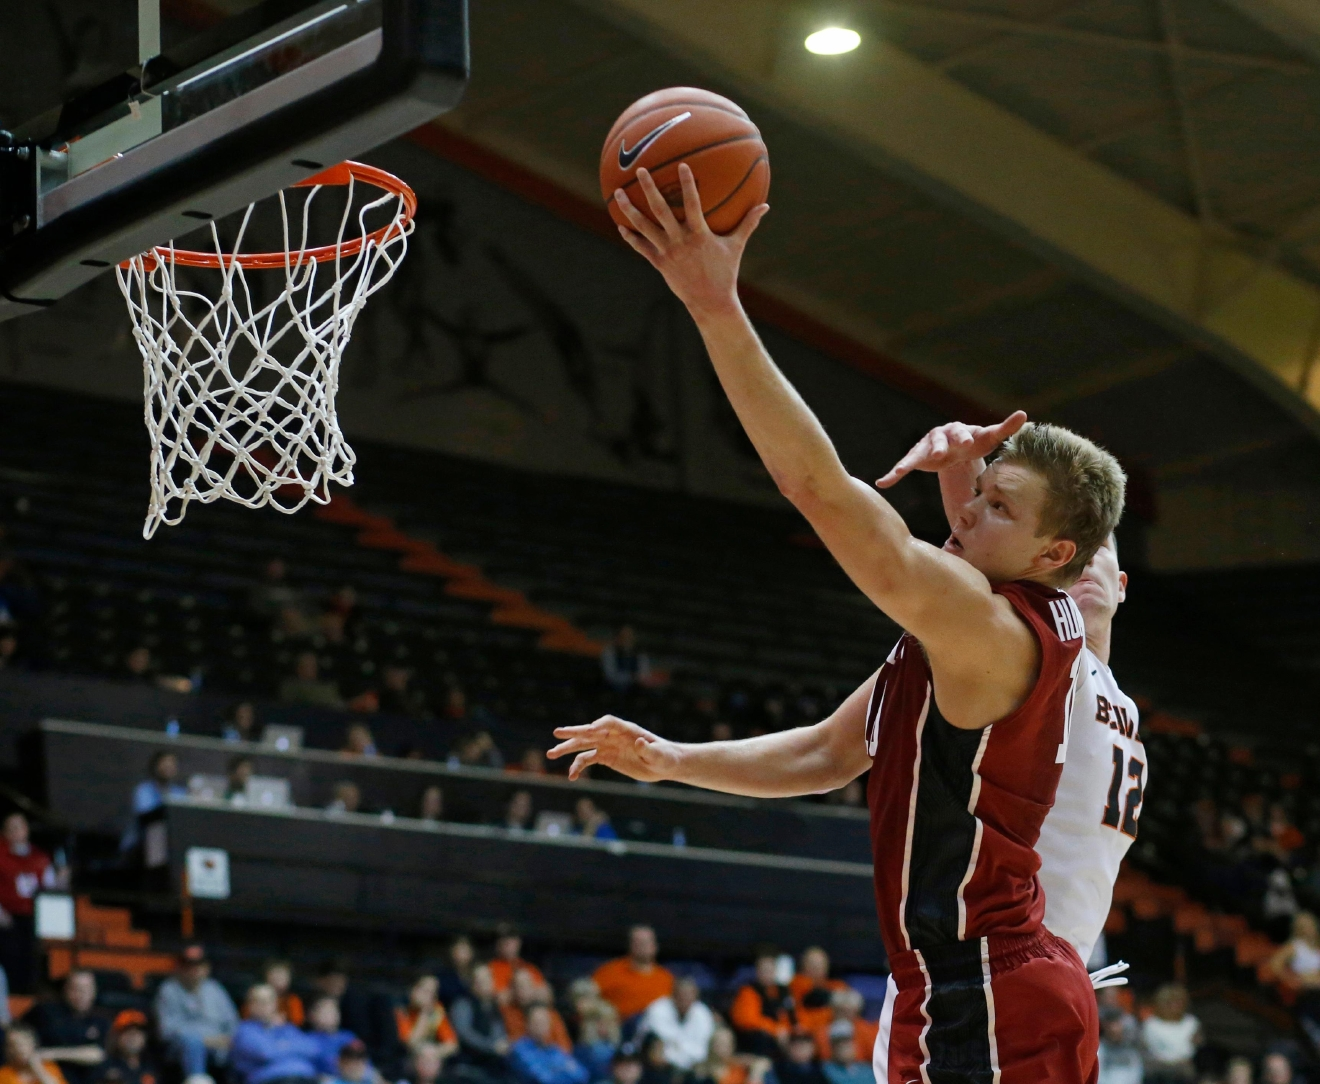 Stanford's Michael Humphrey drives to the basket past Oregon State's Drew Eubanks (12) during the second half of an NCAA college basketball game in Corvallis, Ore., Thursday, Jan. 19, 2017. Stanford won 62-46. (AP Photo/Timothy J. Gonzalez)